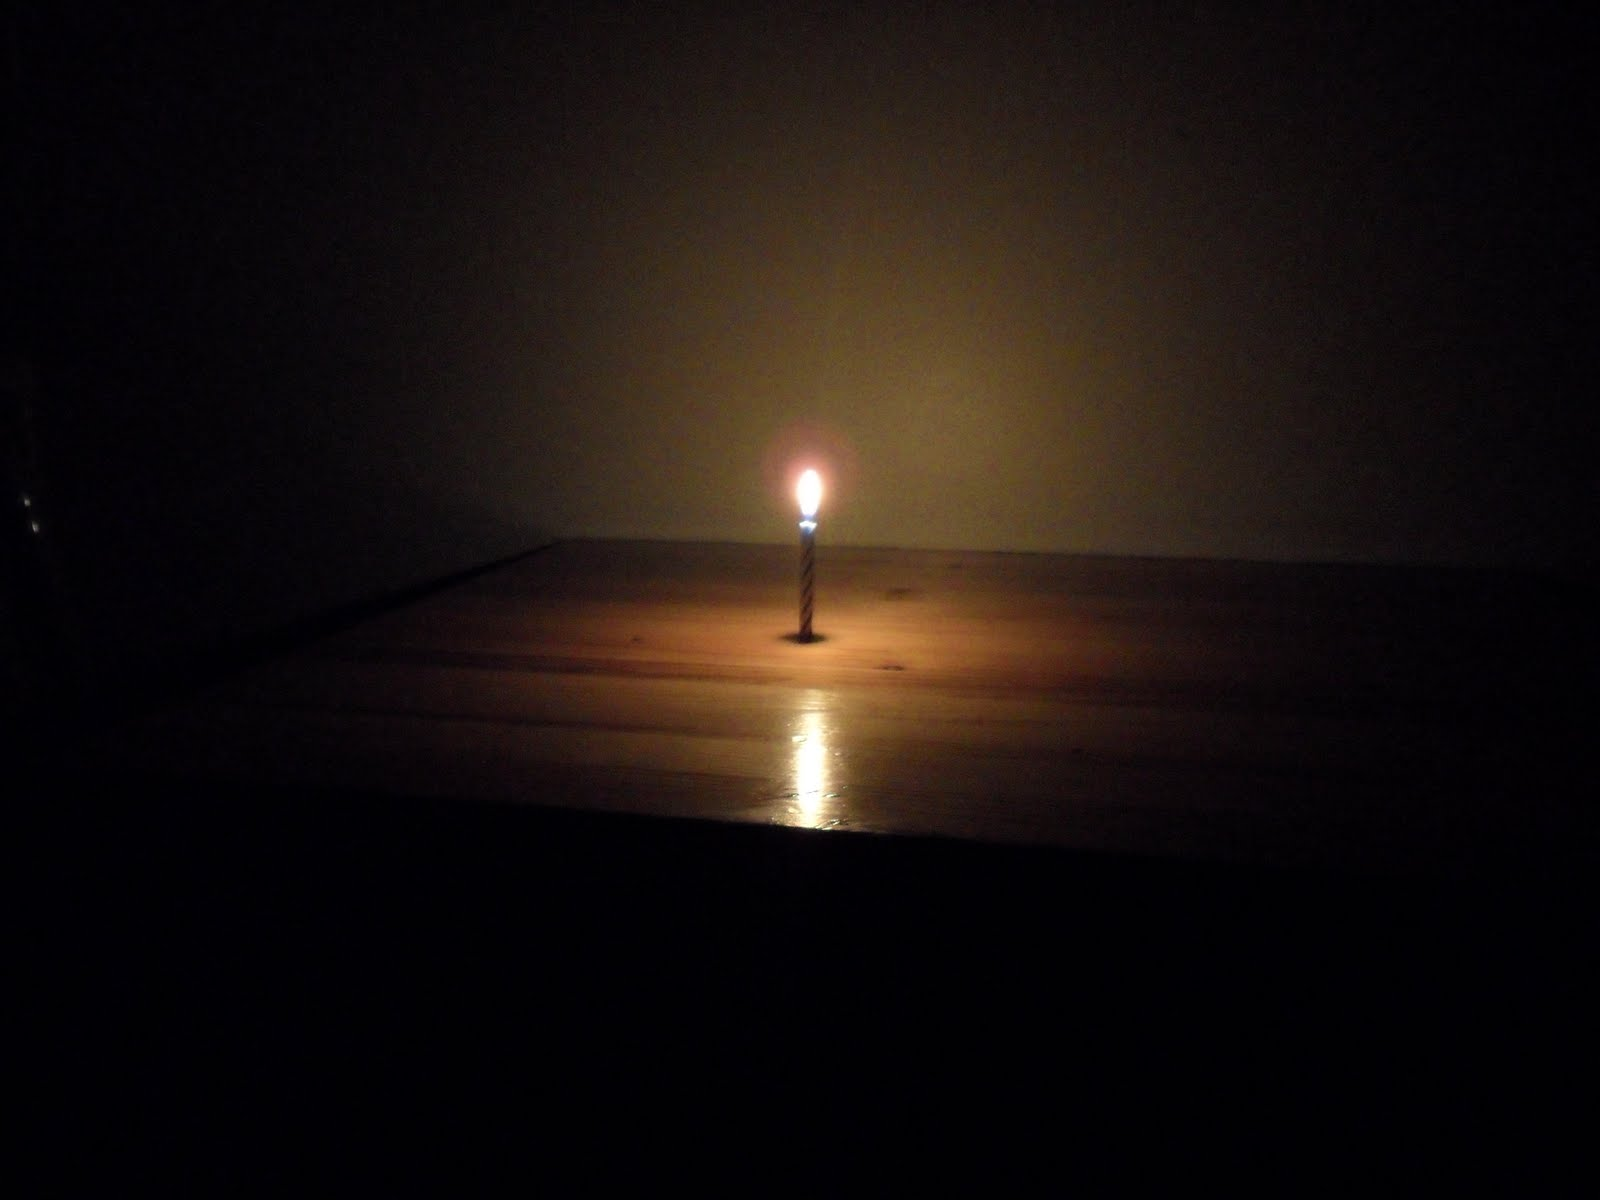 candle in the dark - photo #41